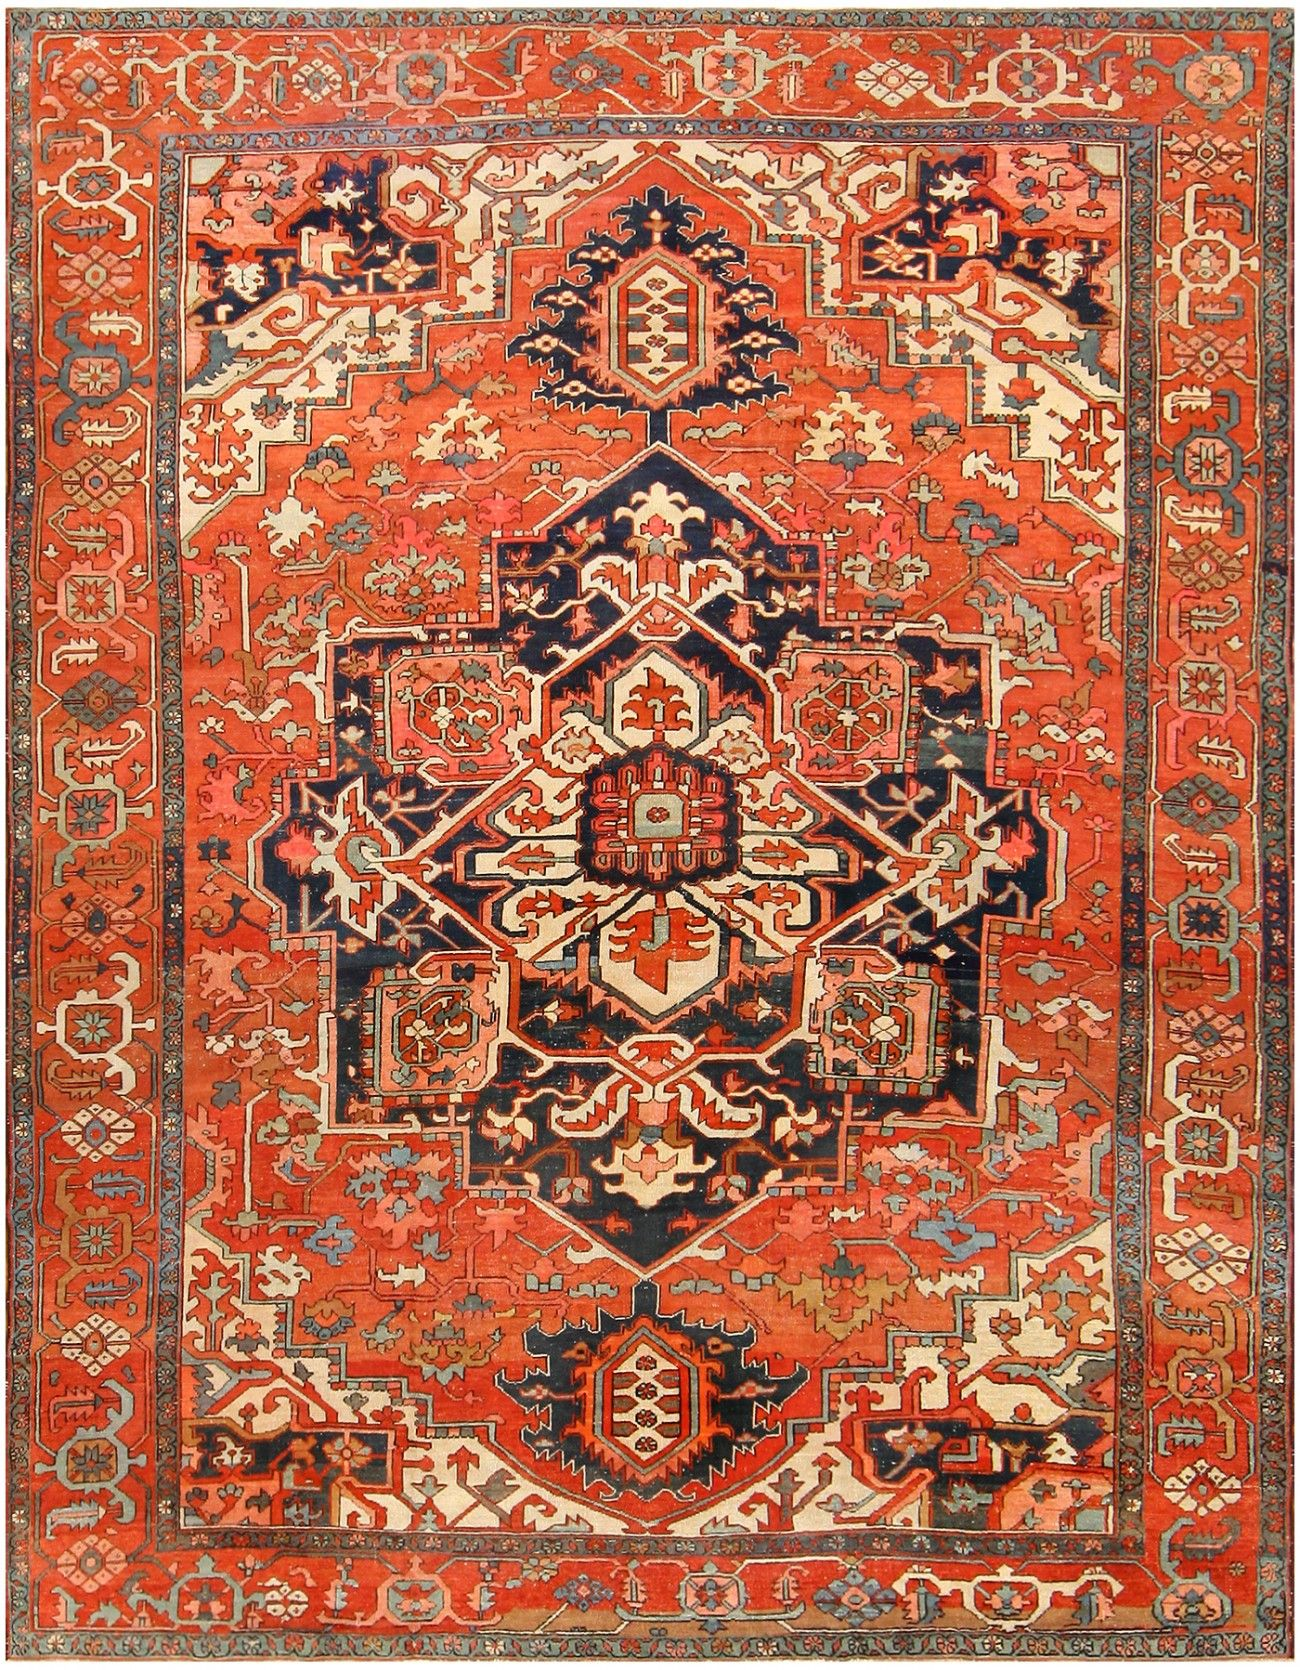 Antique Rugs In 2020 Rugs Rugs On Carpet Persian Carpet